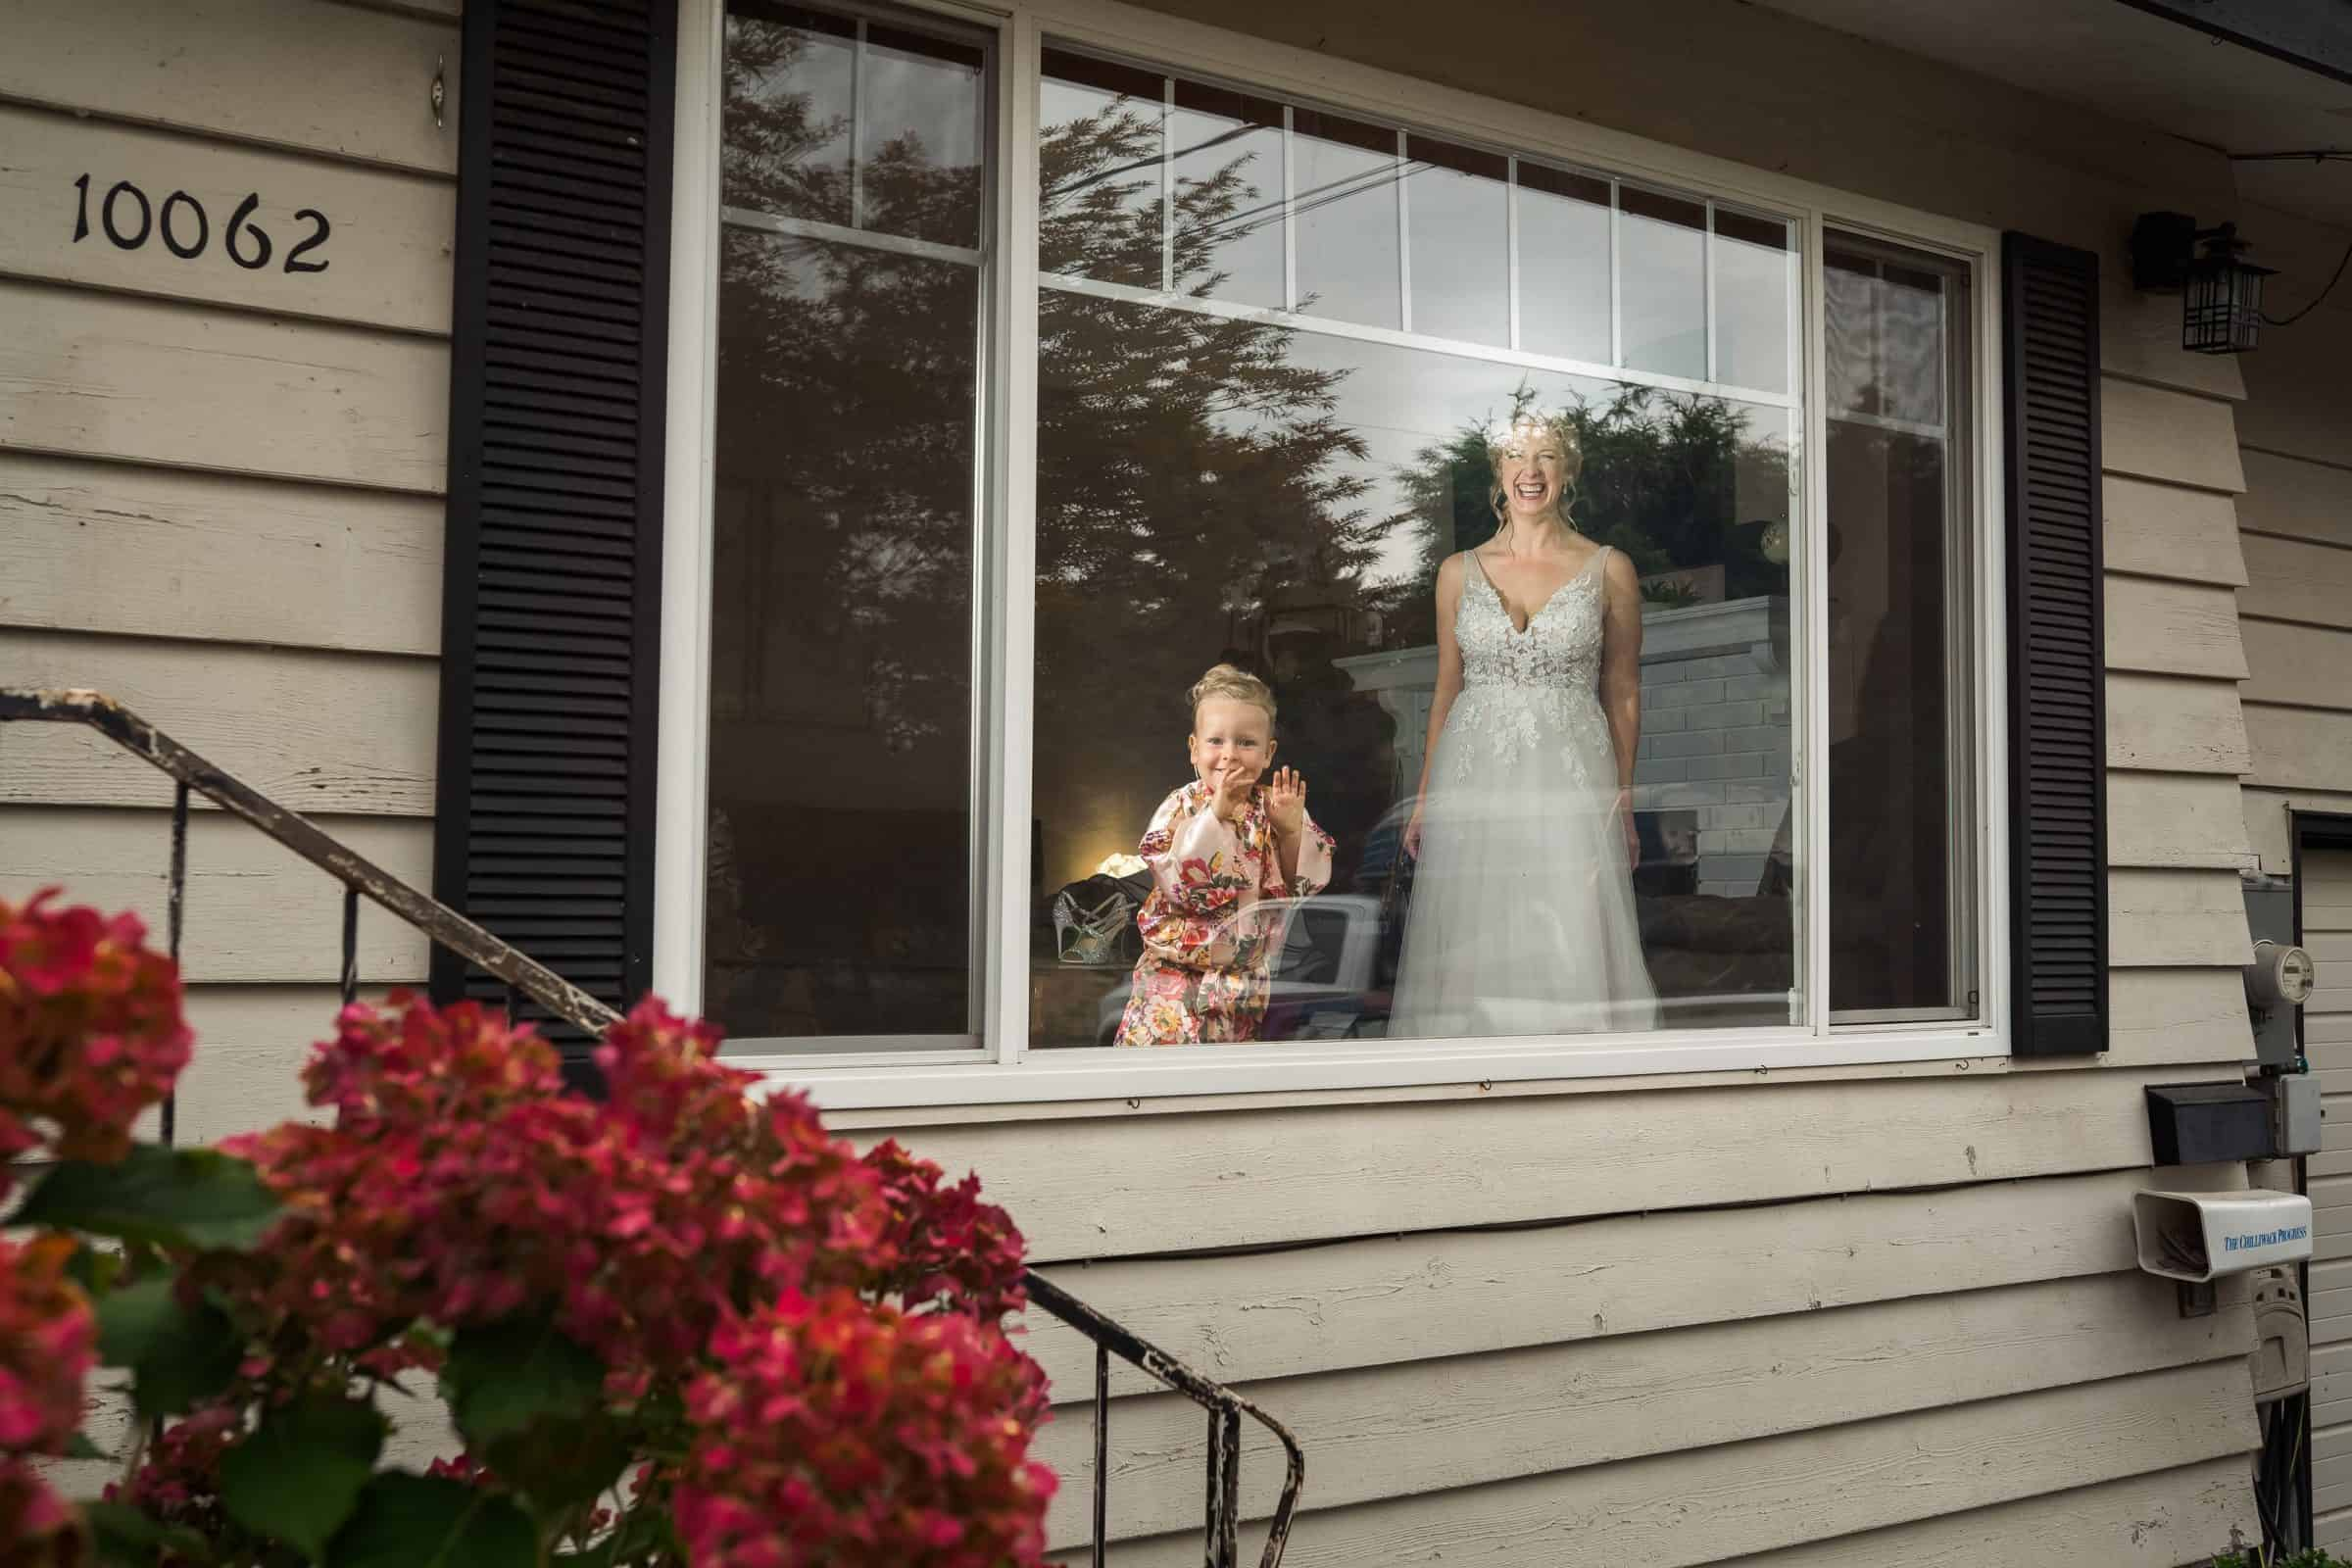 bride laughing and flower girl photobombing through window